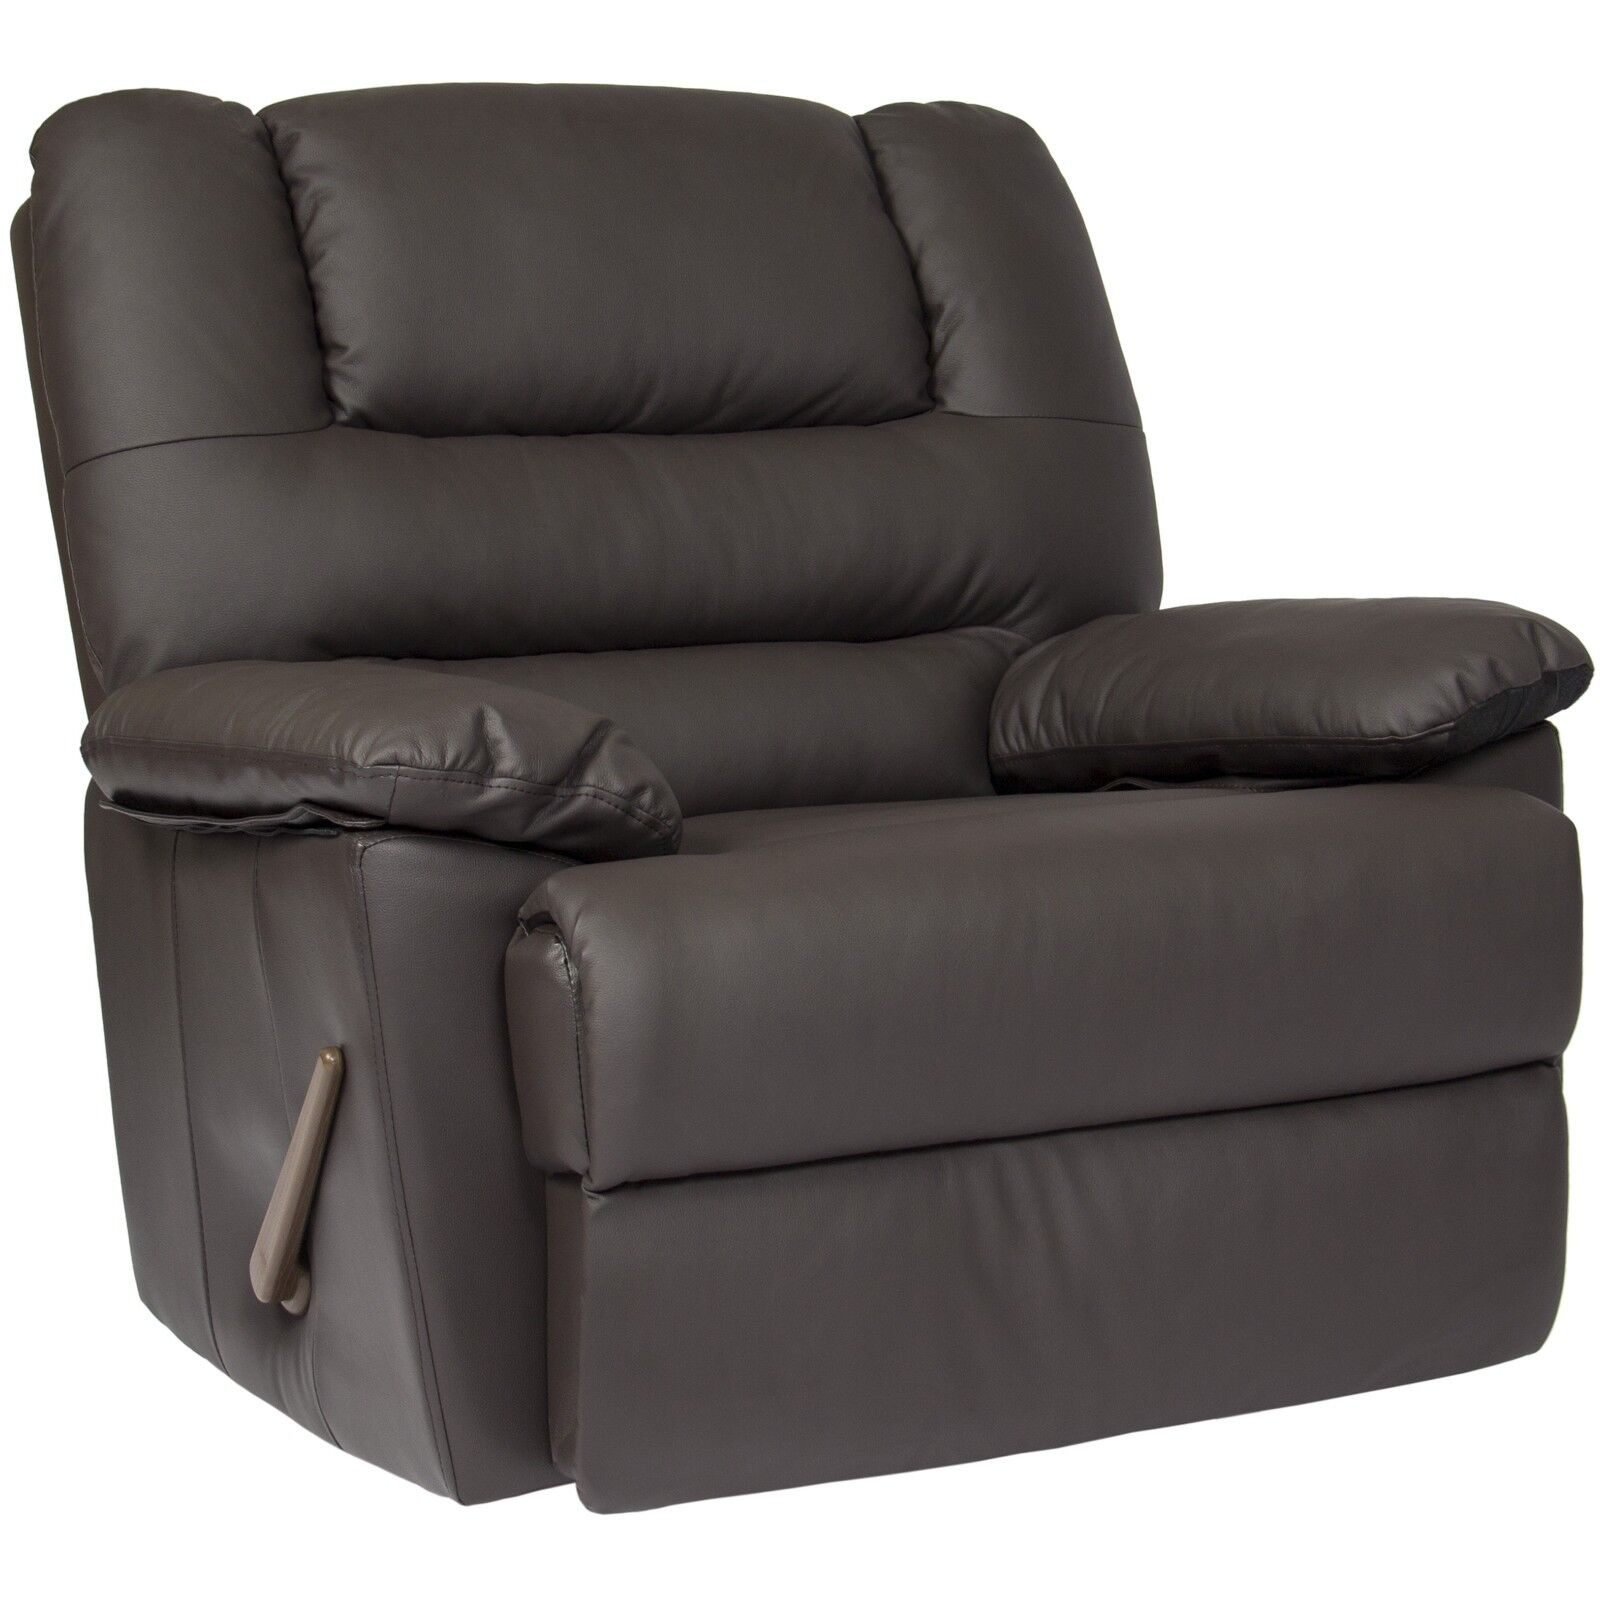 Oversized Recliner Chair Living Room Arm Club Seat Rocker Wi